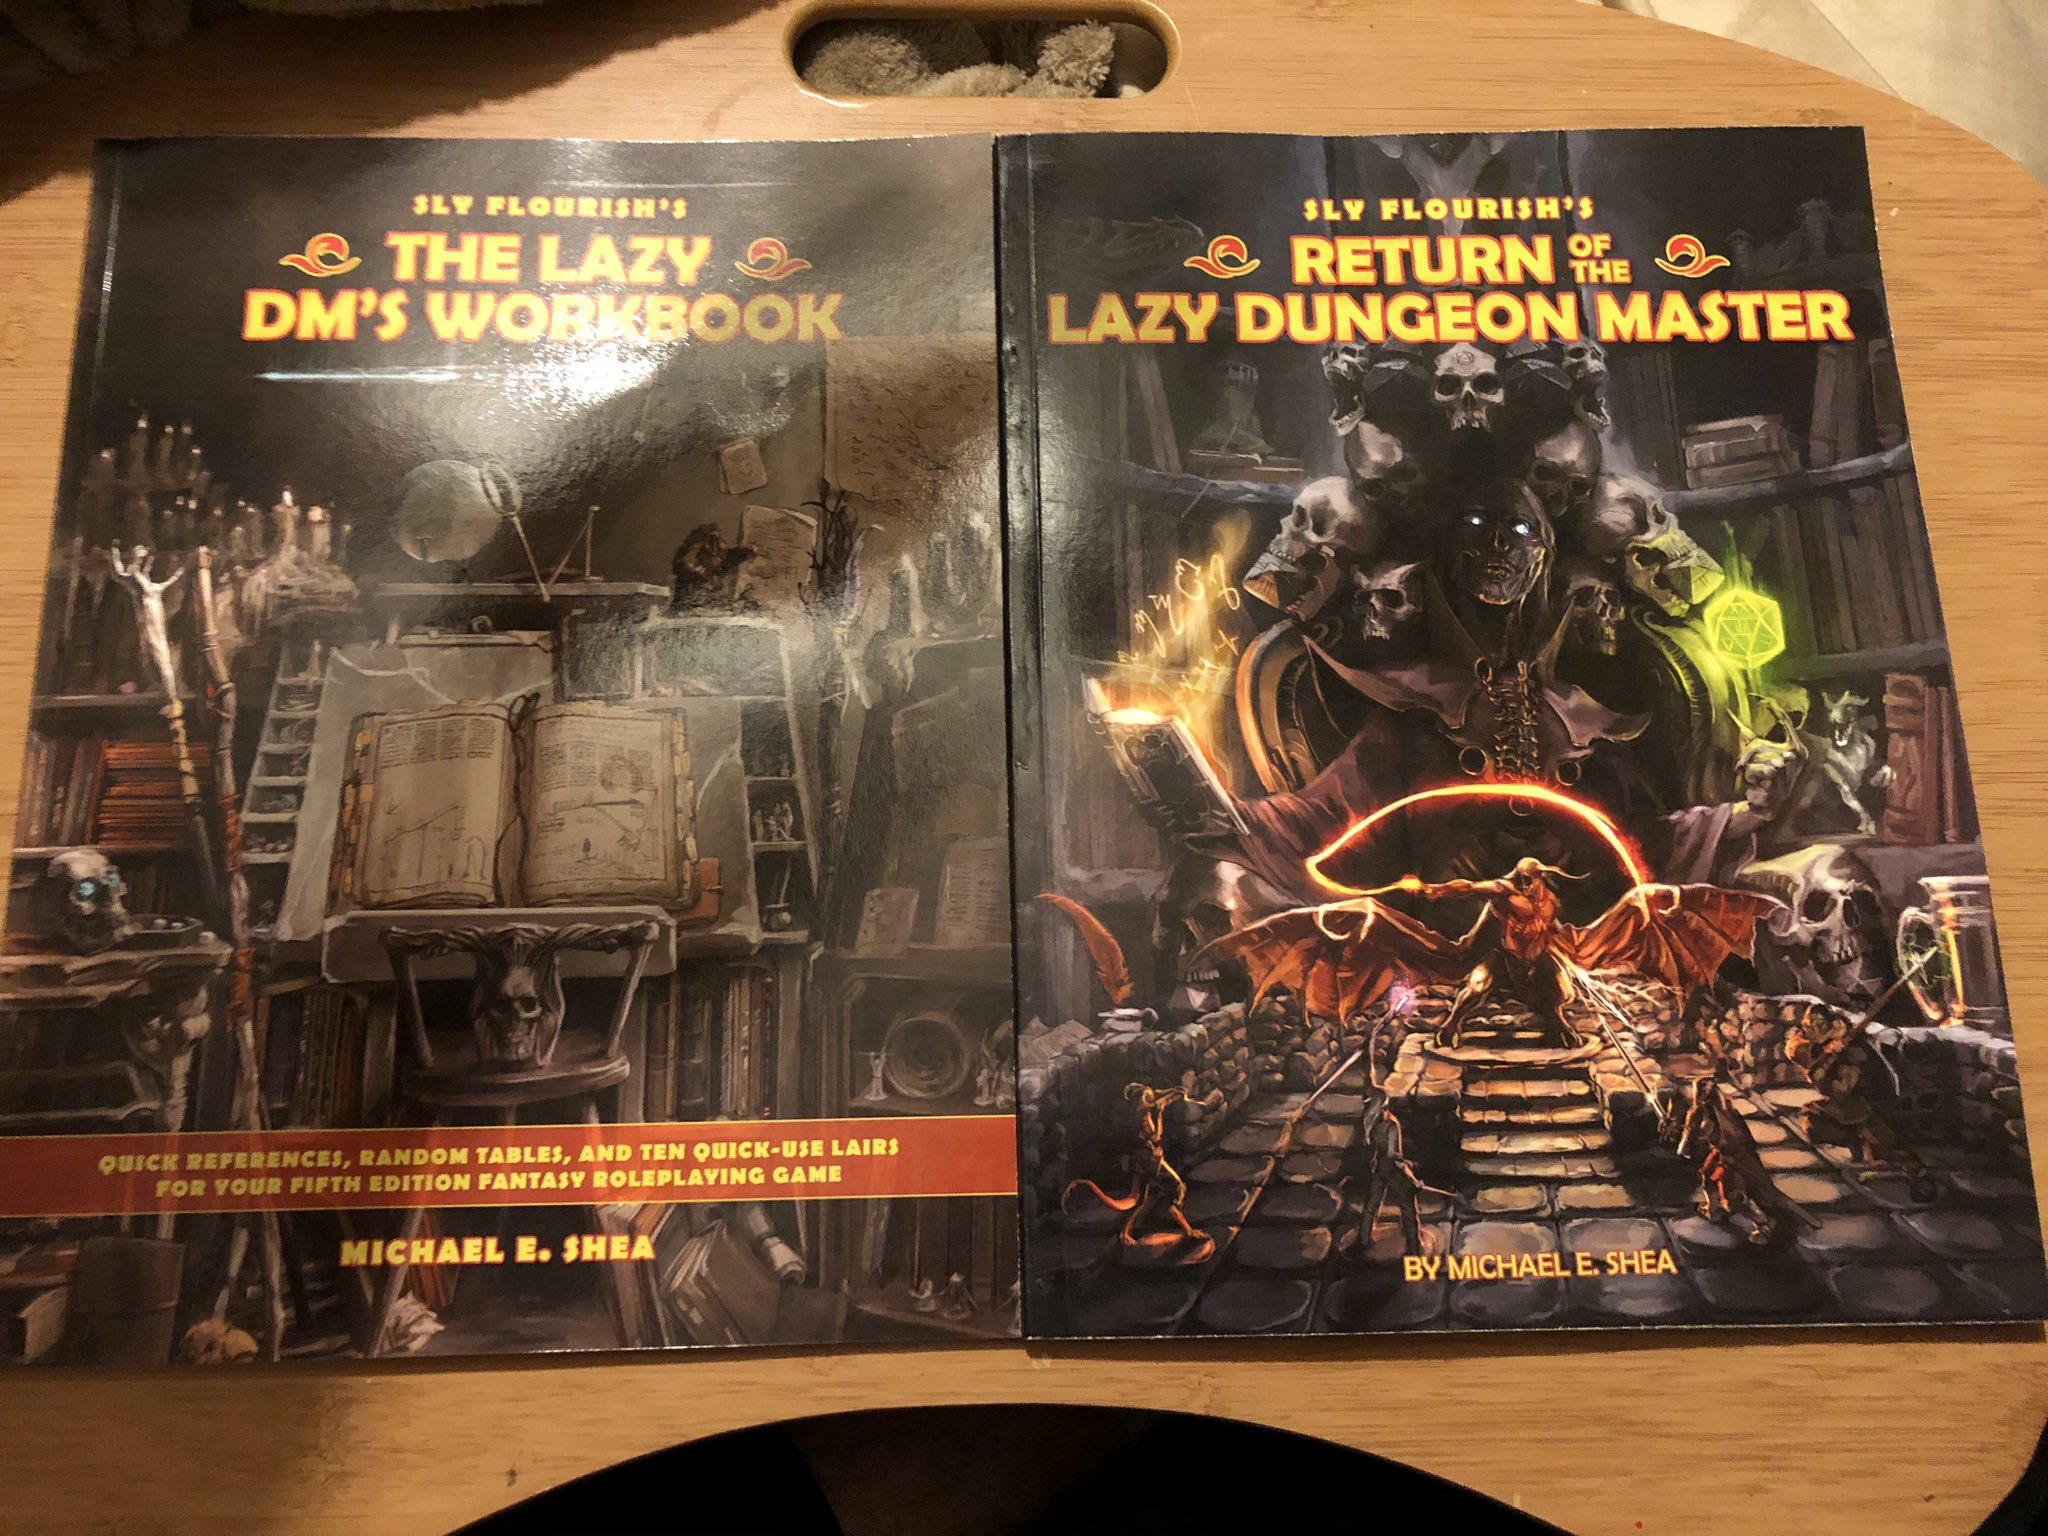 """Mephit Man on Twitter: """"Excited to take a look at @SlyFlourish's Return of  the Lazy Dungeon Master and The Lazy DM's Workbook! #dnd #dungeonmaster…  https://t.co/rQD1kOnTdX"""""""